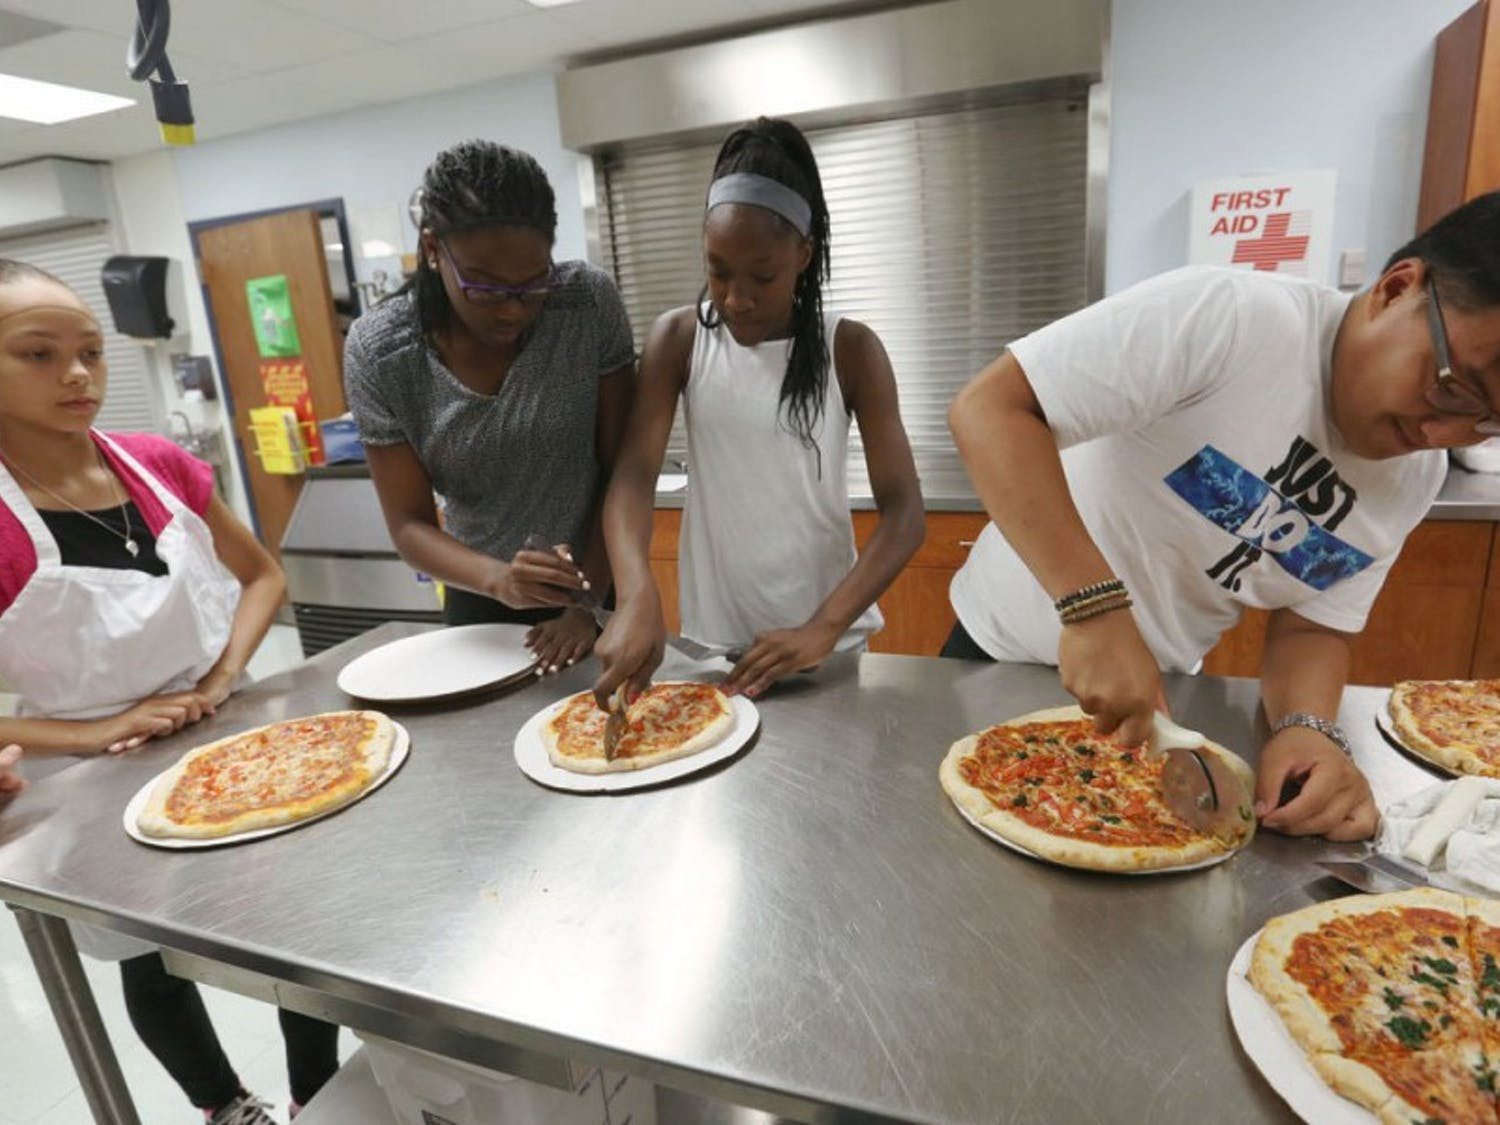 UW-Madison fifth-year student Donale Richards instructed a science curriculum for high school juniors and seniors enrolled in the PEOPLE Program during the summer of 2016 and worked with the group to market their own pizza.